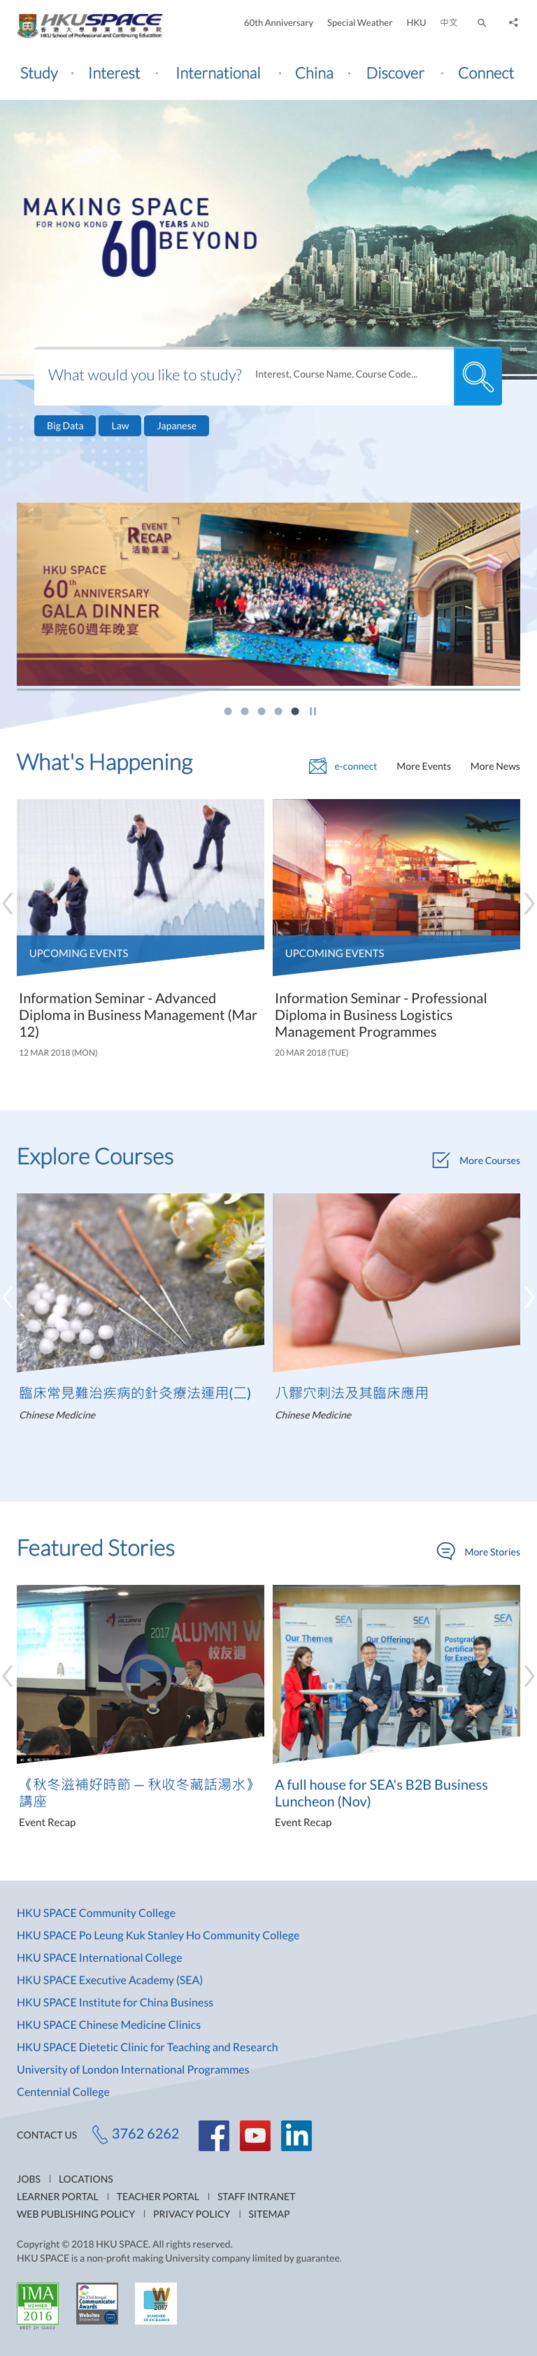 HKU SPACE website screenshot for tablet version 1 of 2